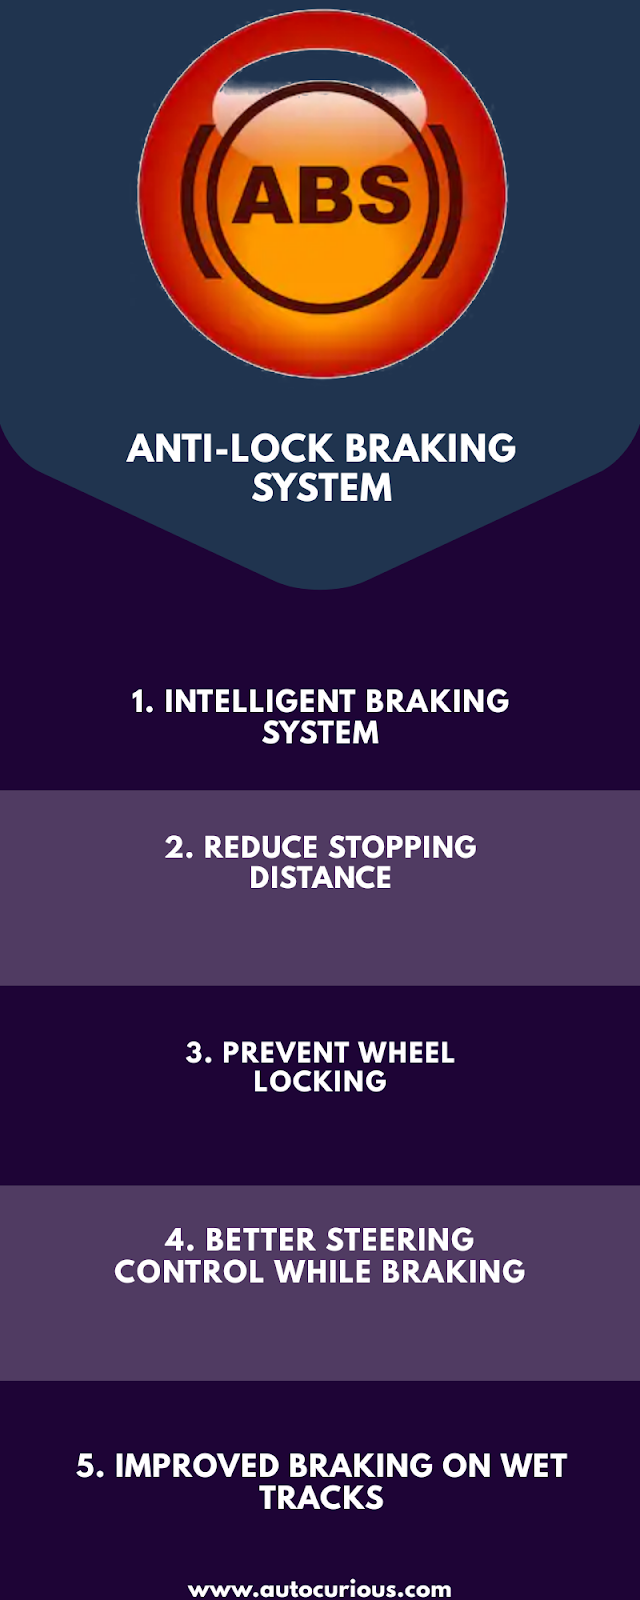 Jow does Anti-Lock Braking System works?